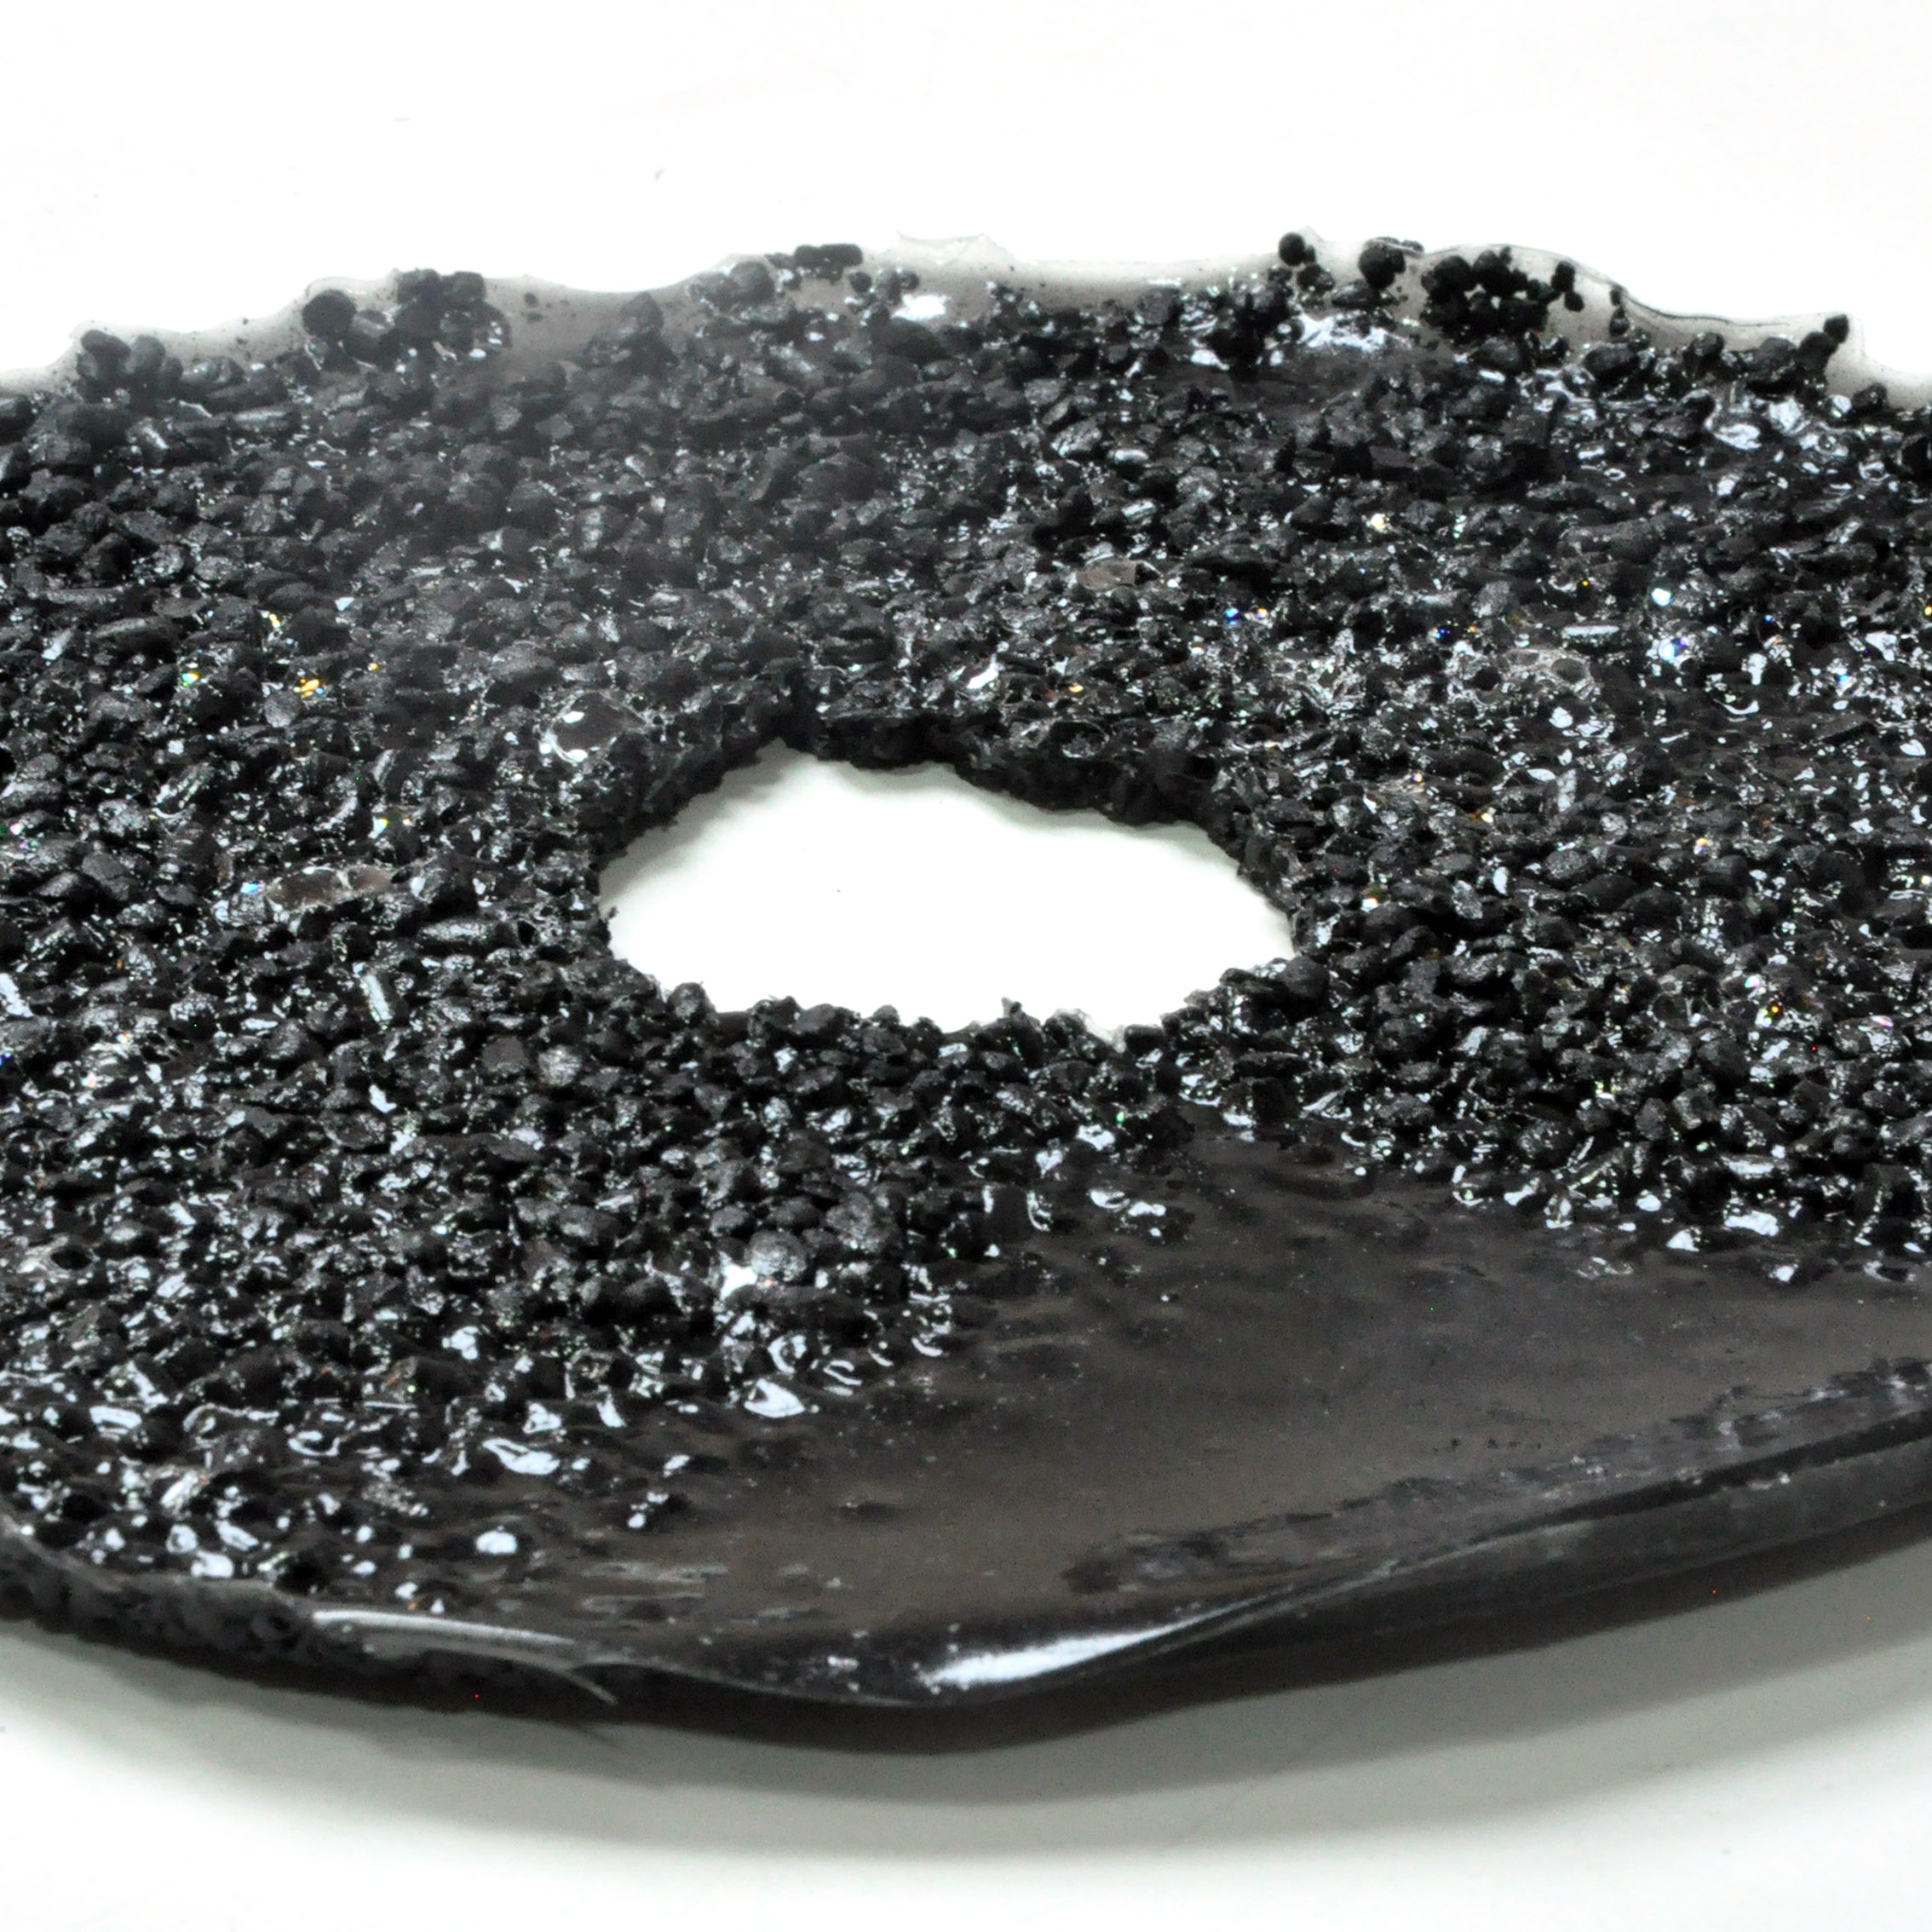 Bio Filter : bioplastic + activated charcoal